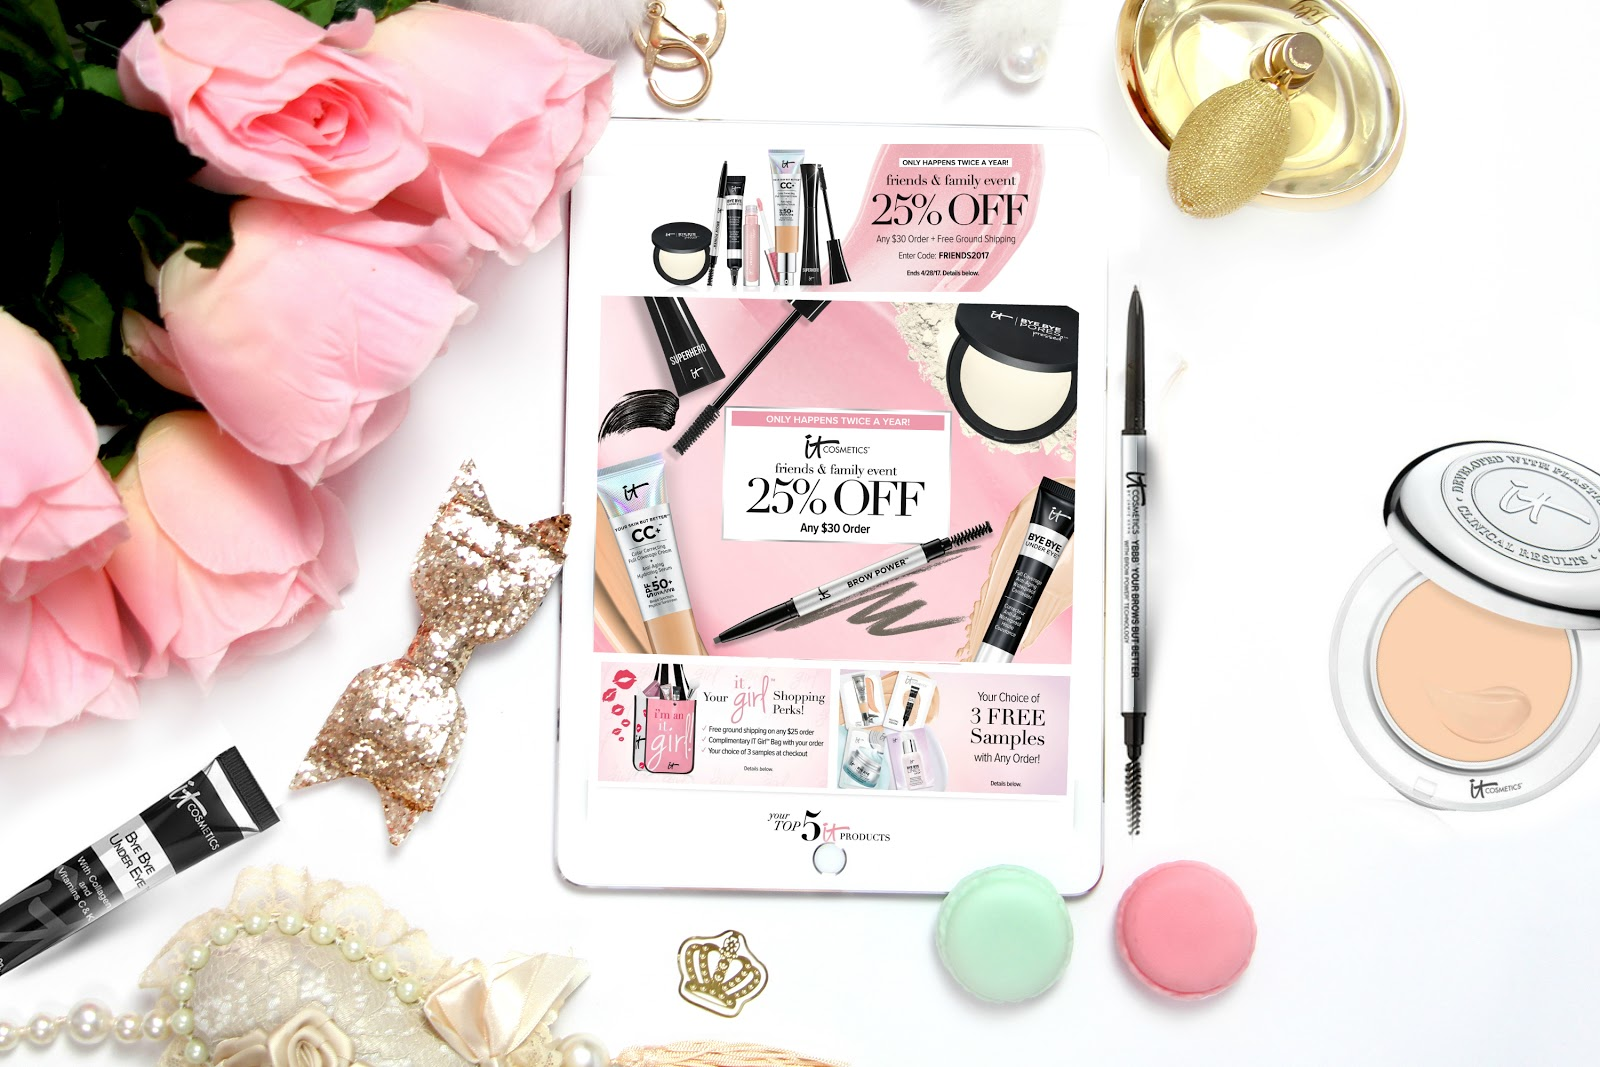 Itcosmetics Family And Friends Event With 25% Off by barbies beauty bits